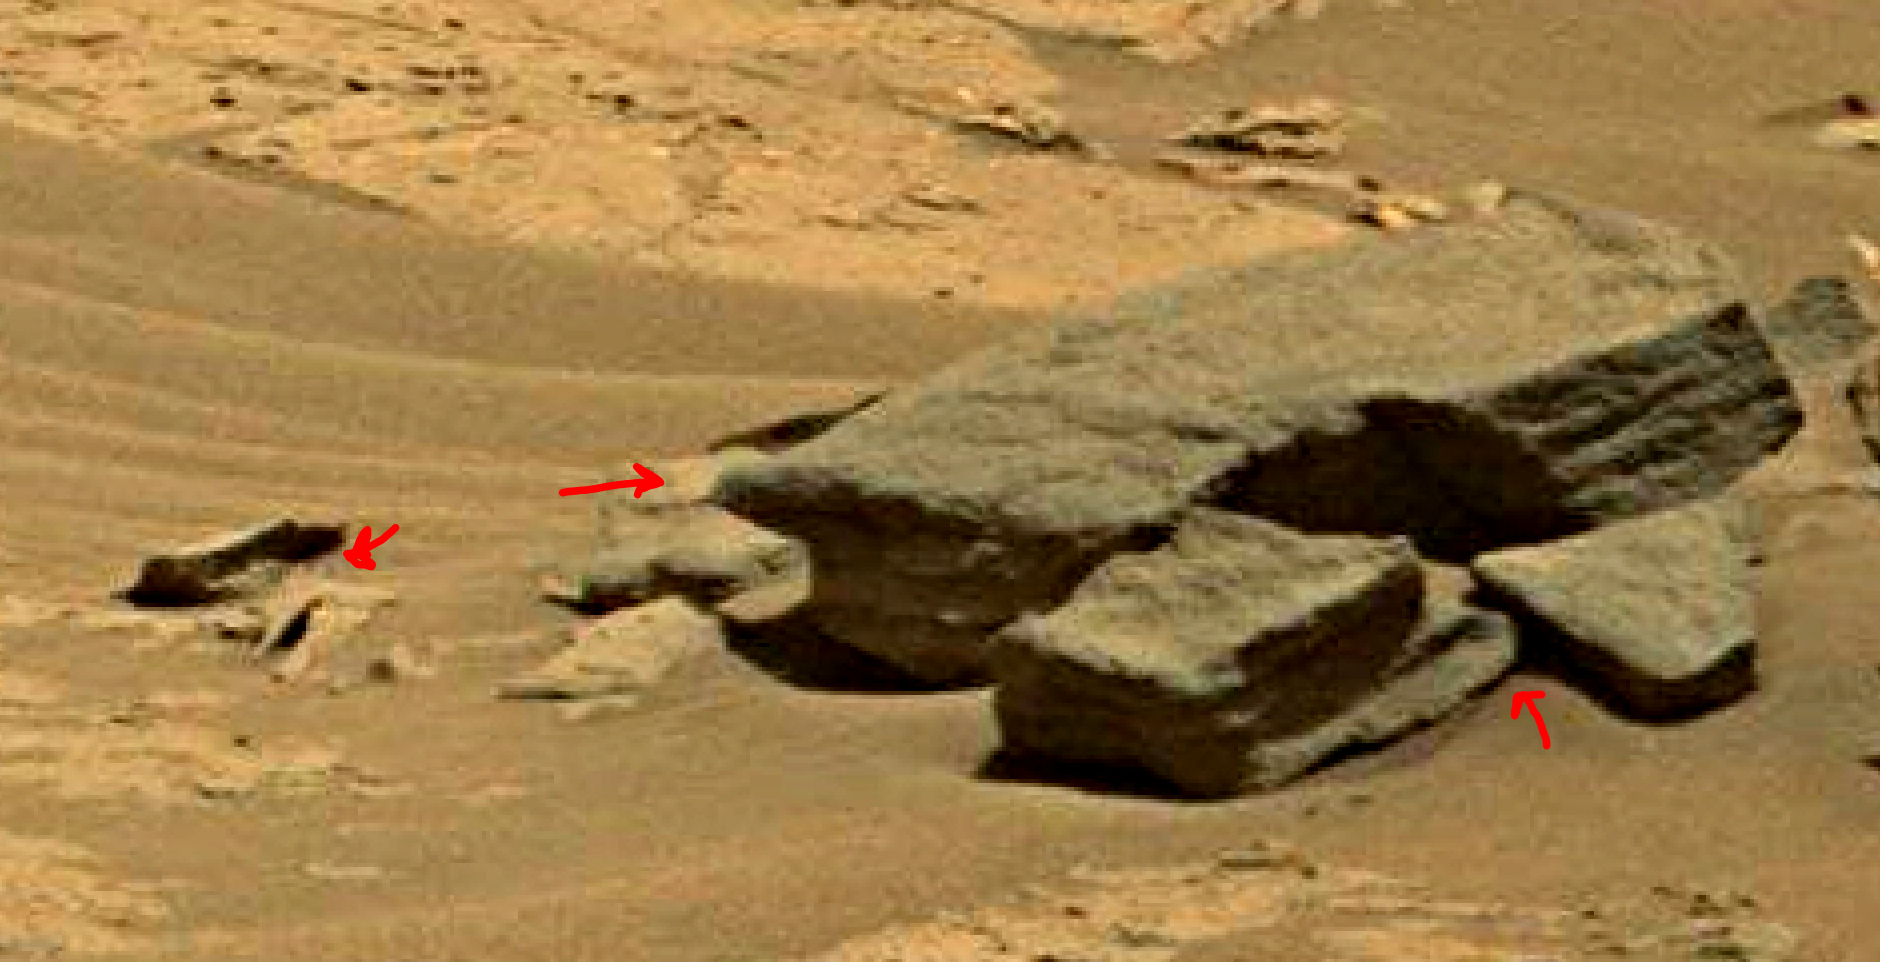 mars sol 1353 anomaly-artifacts 75 was life on mars